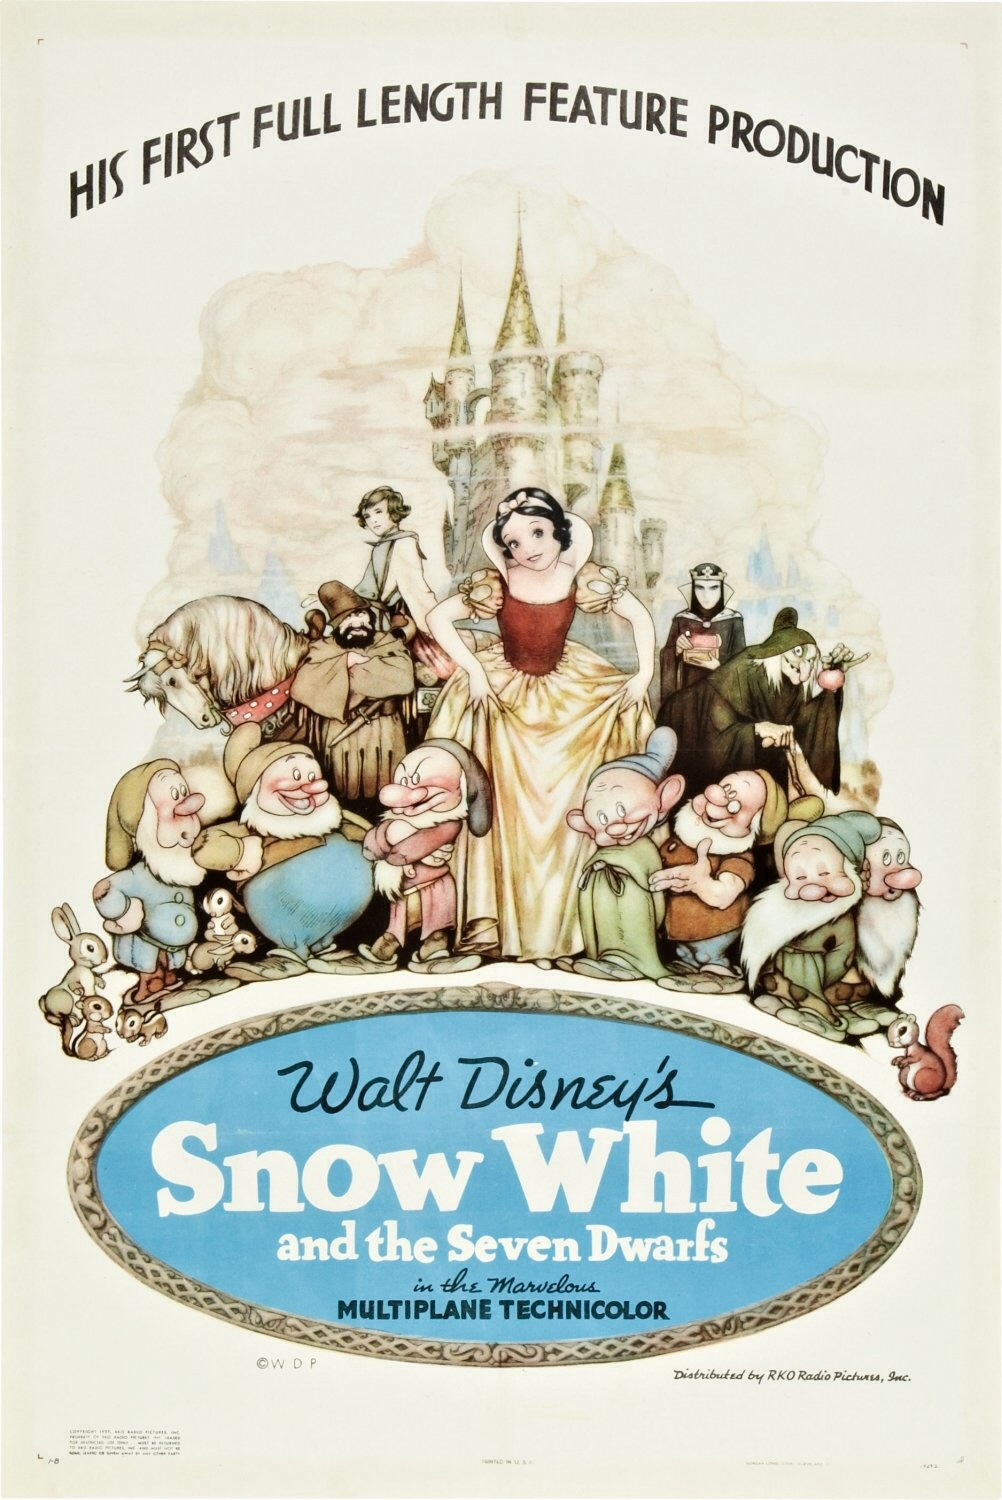 Snow White and the Seven Dwarfs - animated film review - MySF Reviews